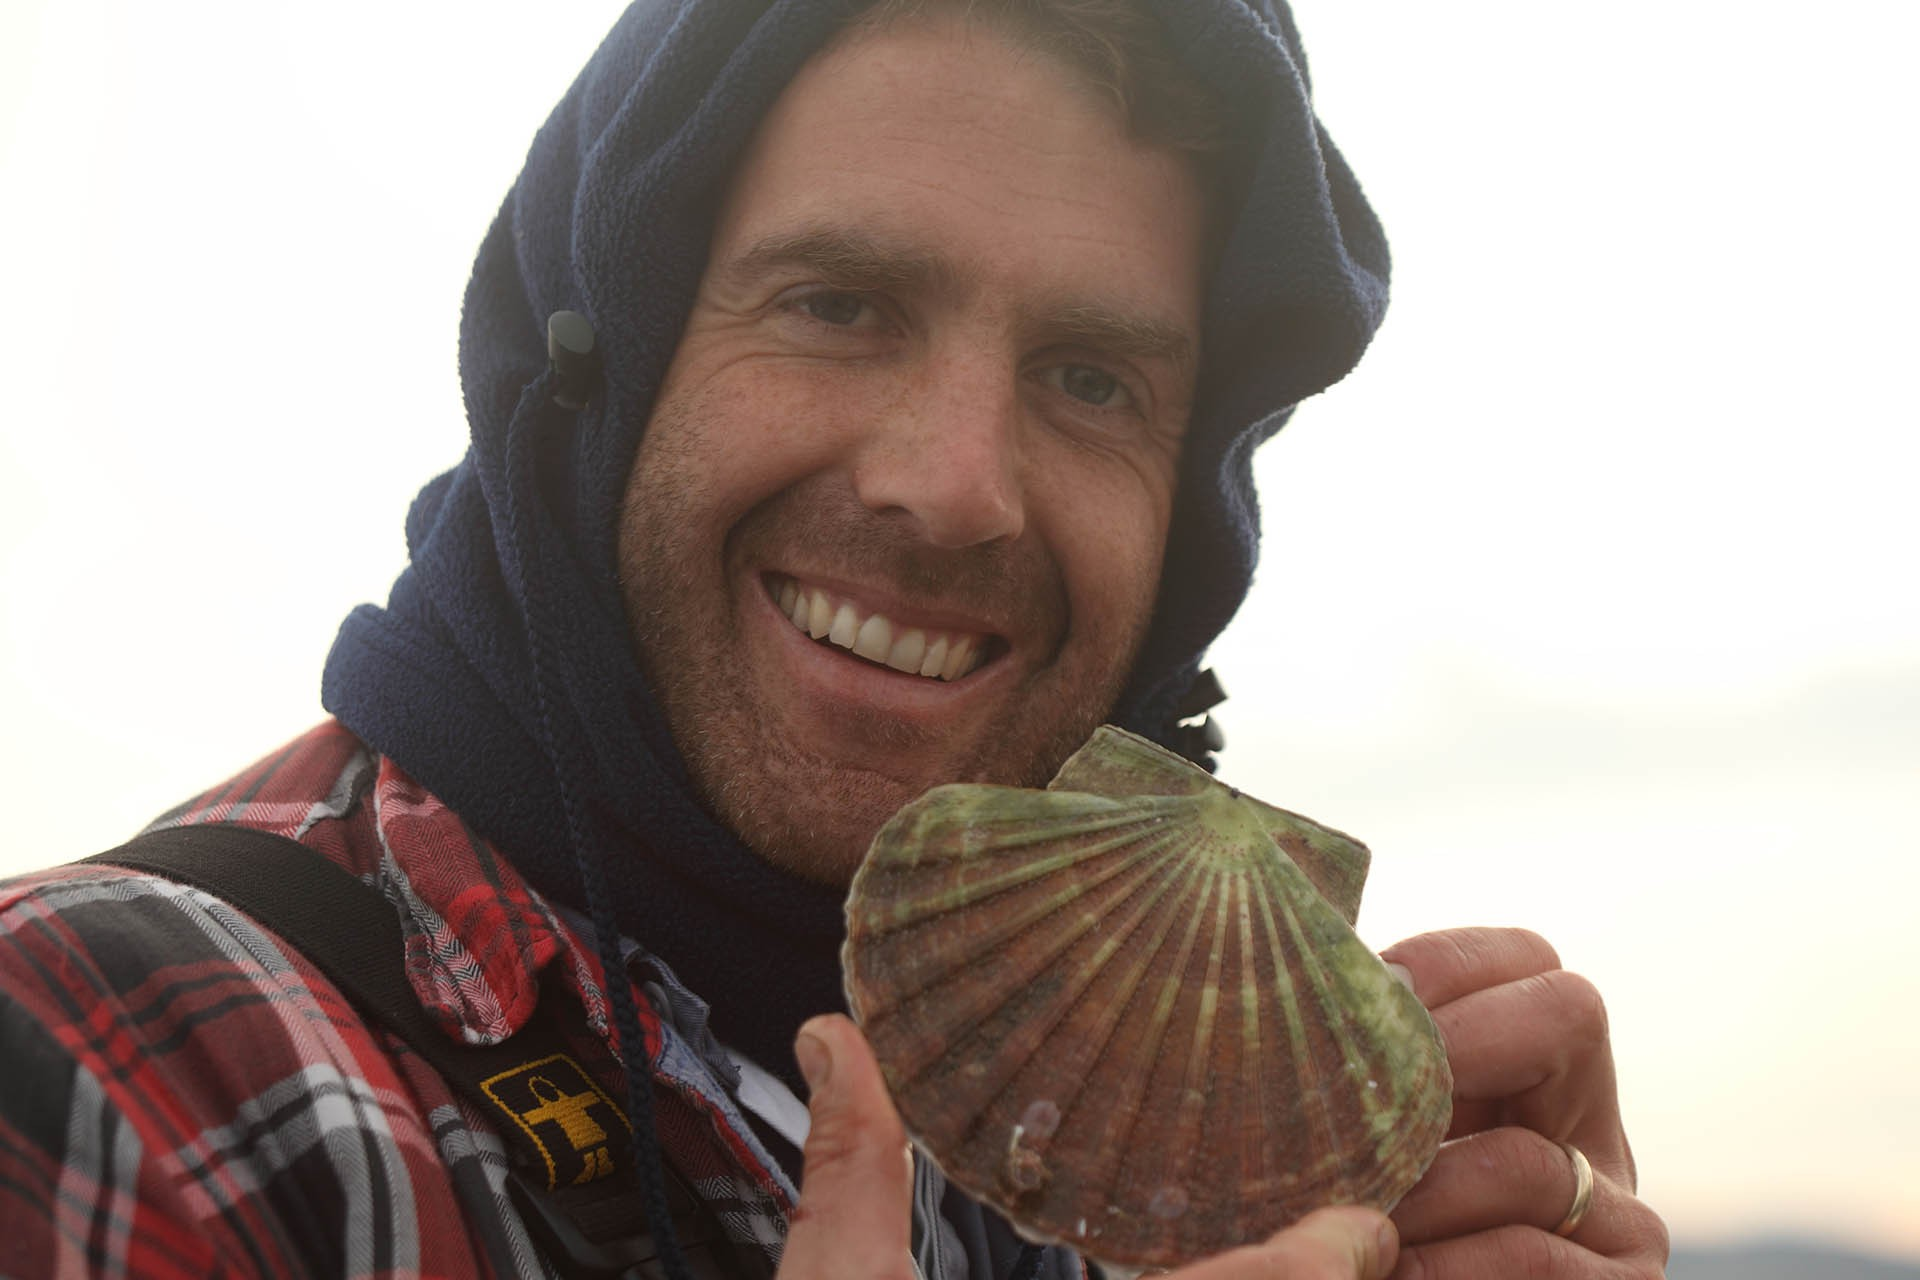 THE SCALLOP DIARIES